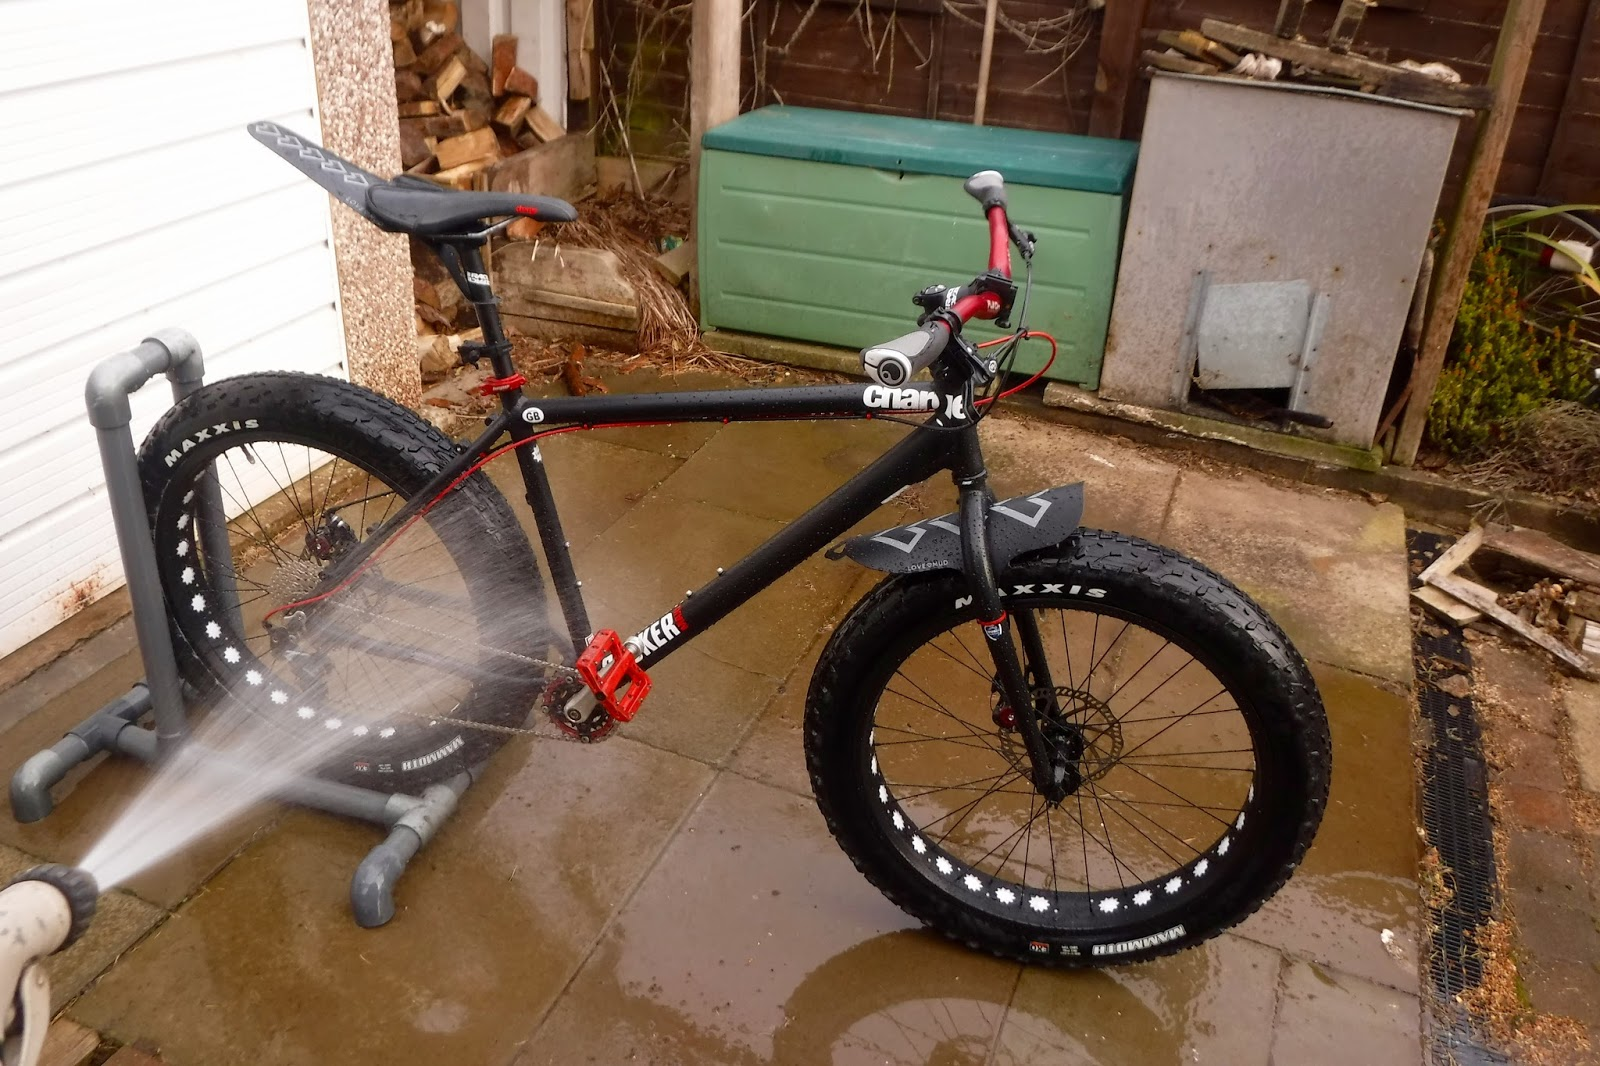 coastrider: Charge Cooker Maxi 1 Alloy Fatbike build £300 + used ...